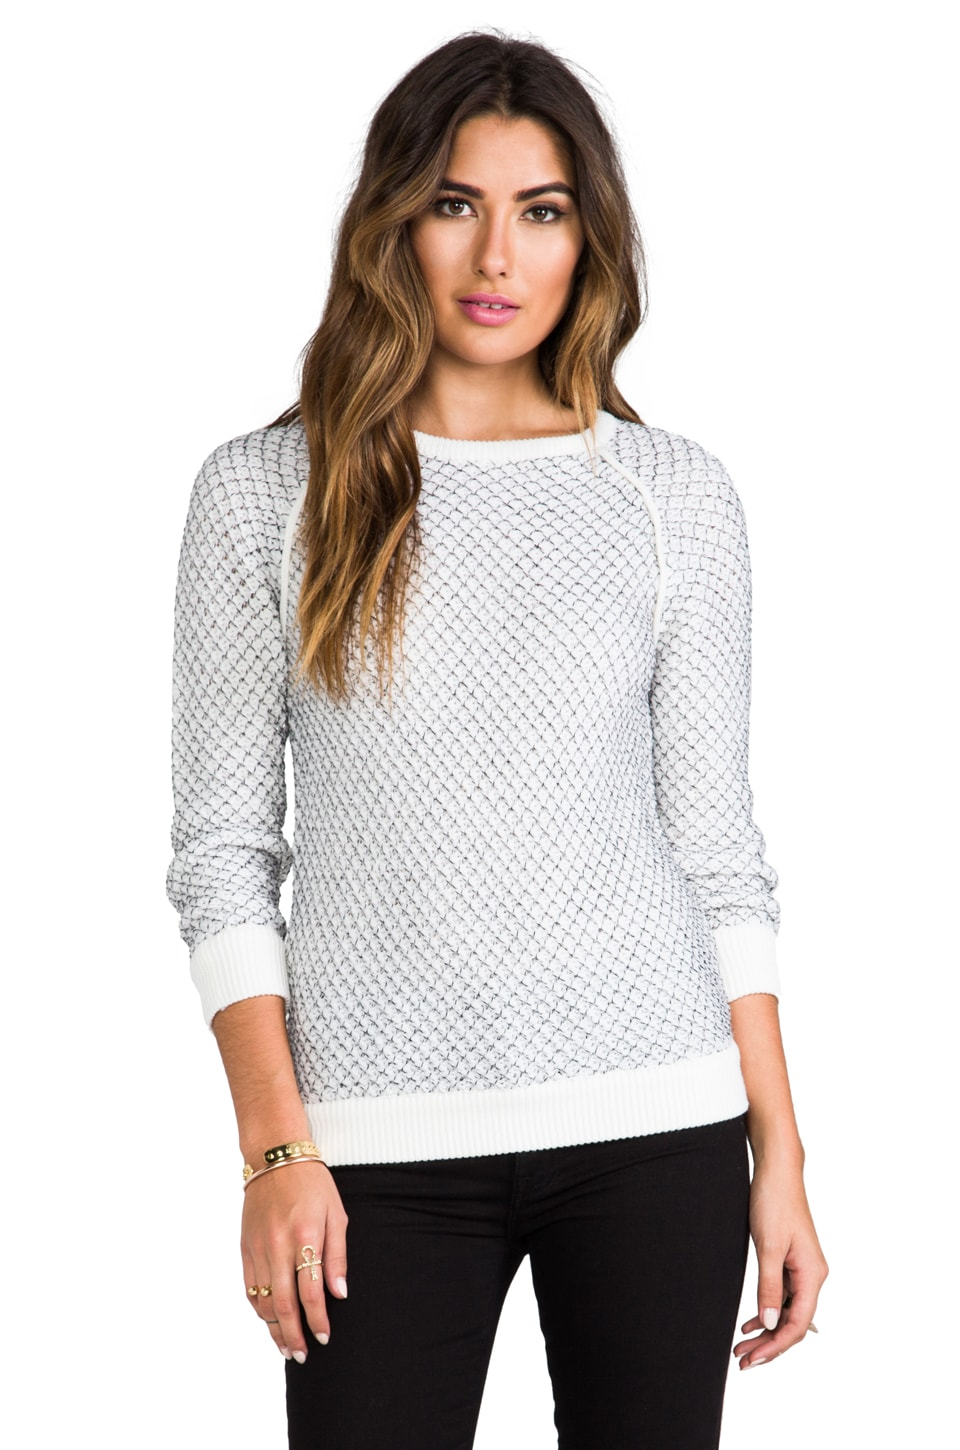 Marc by Marc Jacobs Jina Sweater in Whisper White